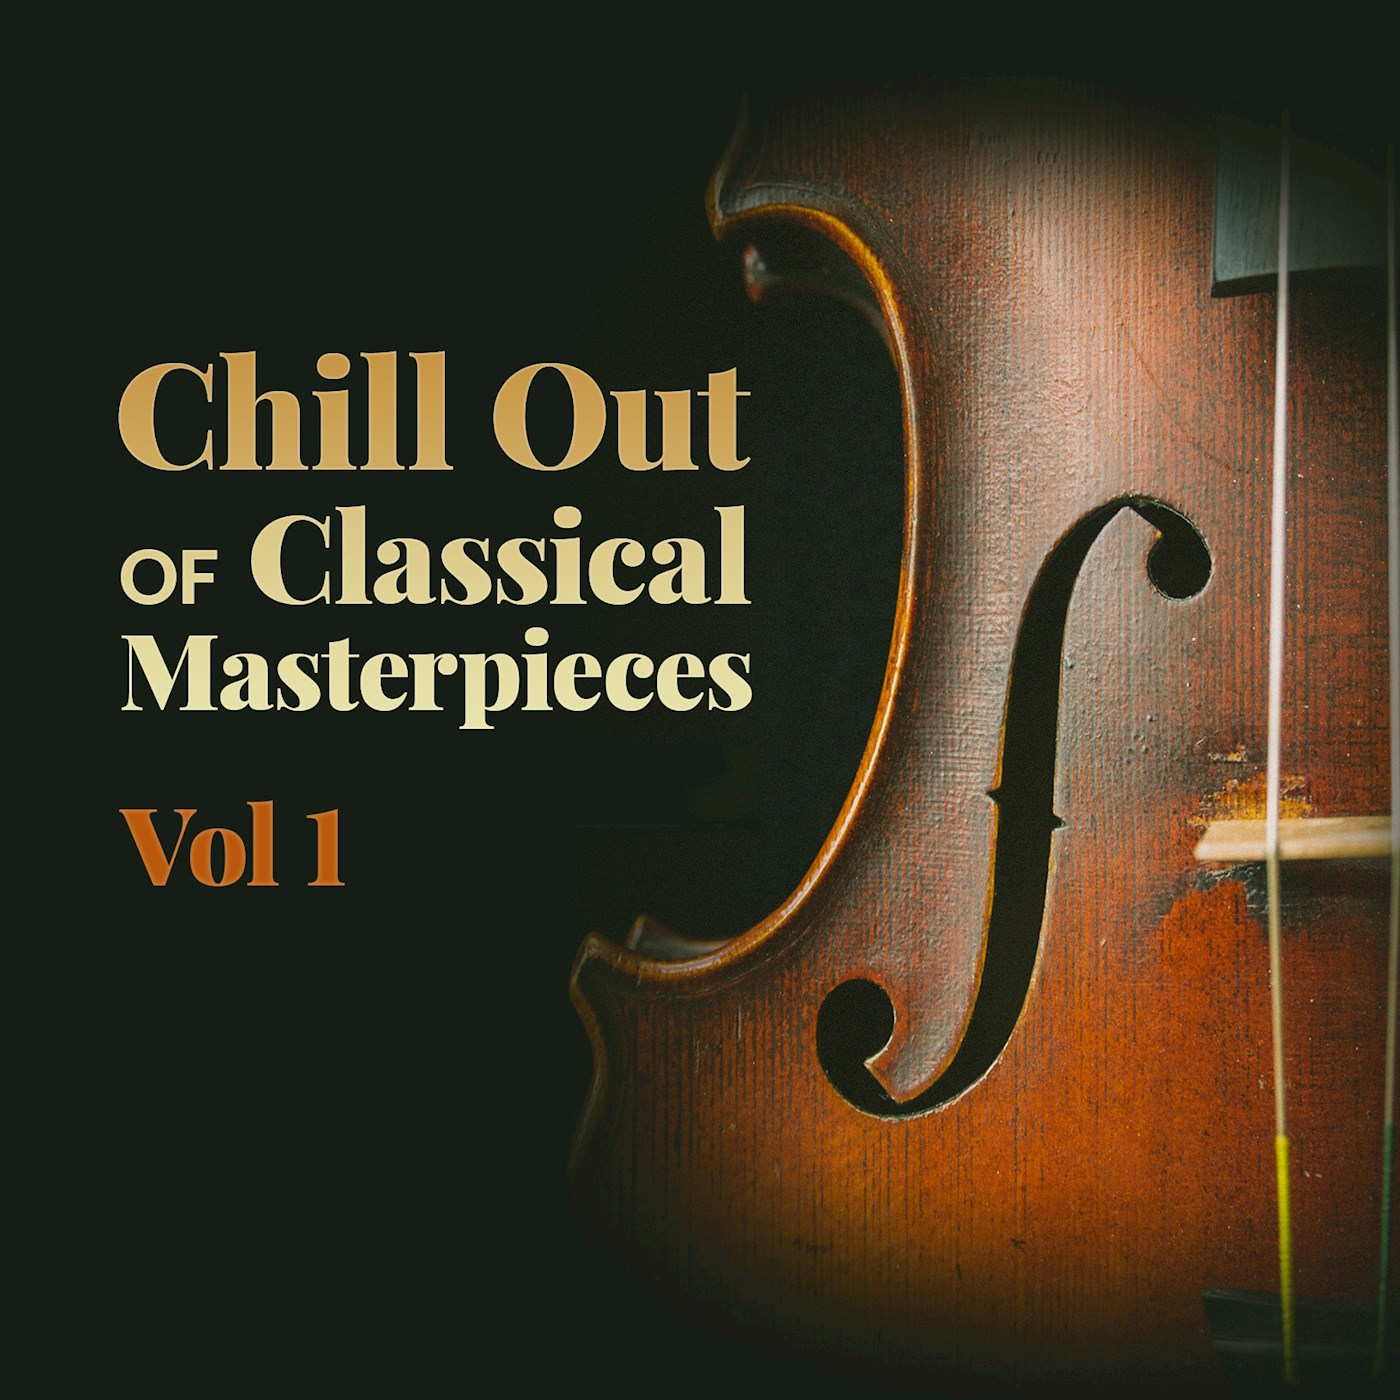 Chill Out of Classical Masterpieces Vol 1